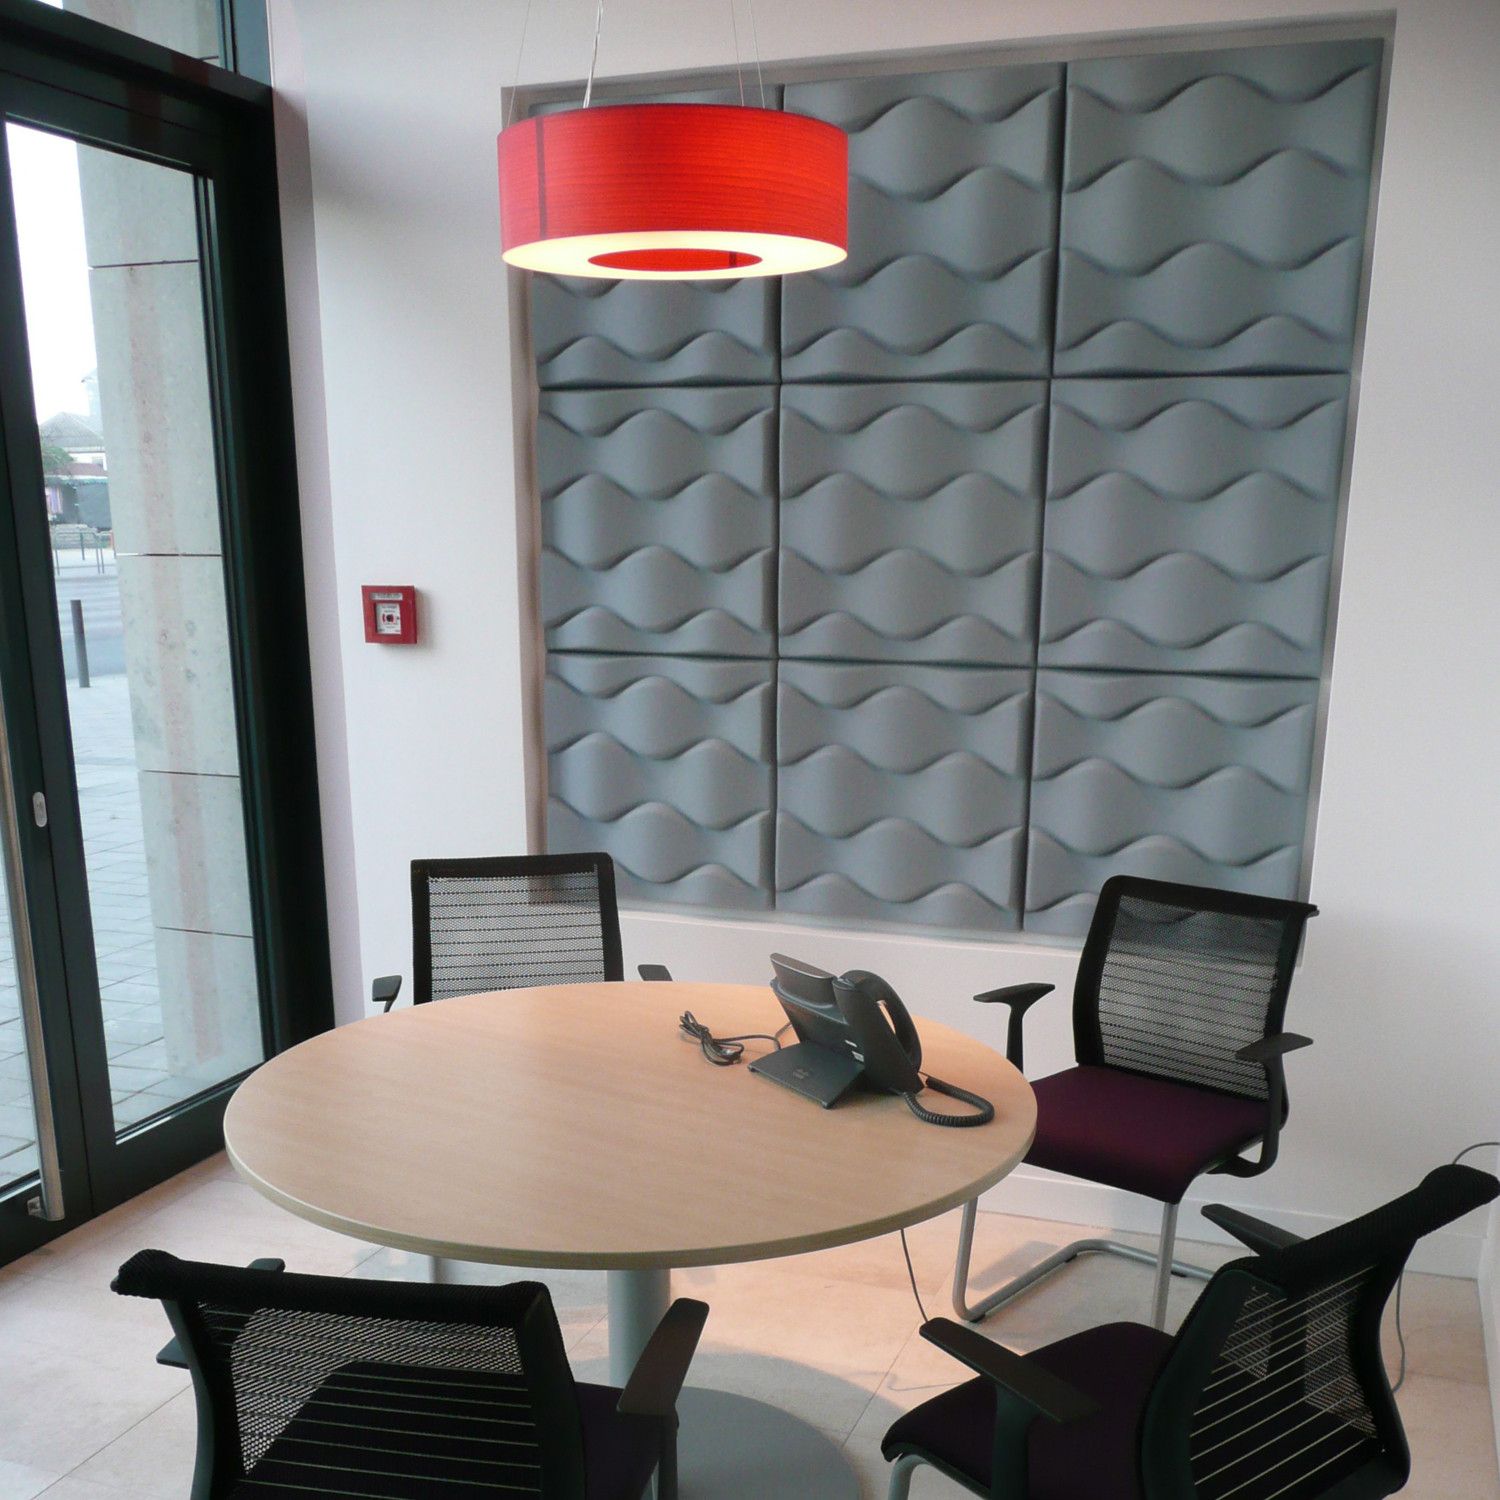 9 Wall Panels : Soundwave flo acoustic wall panels apres furniture